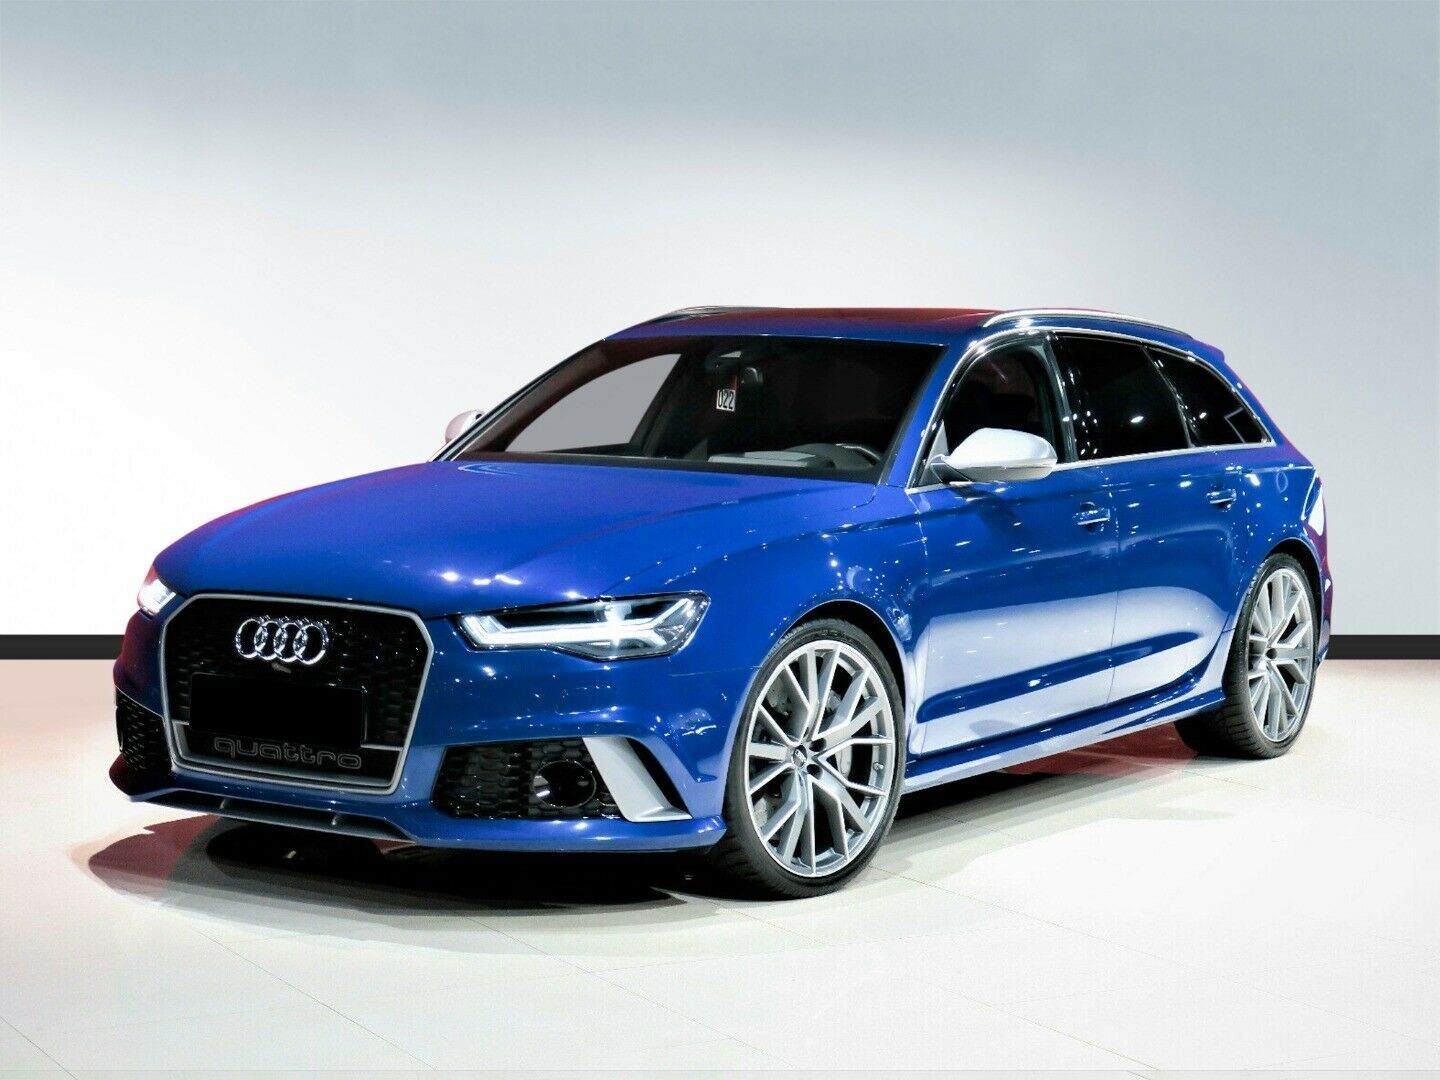 Audi RS6 - TFSi performance Avant quattro